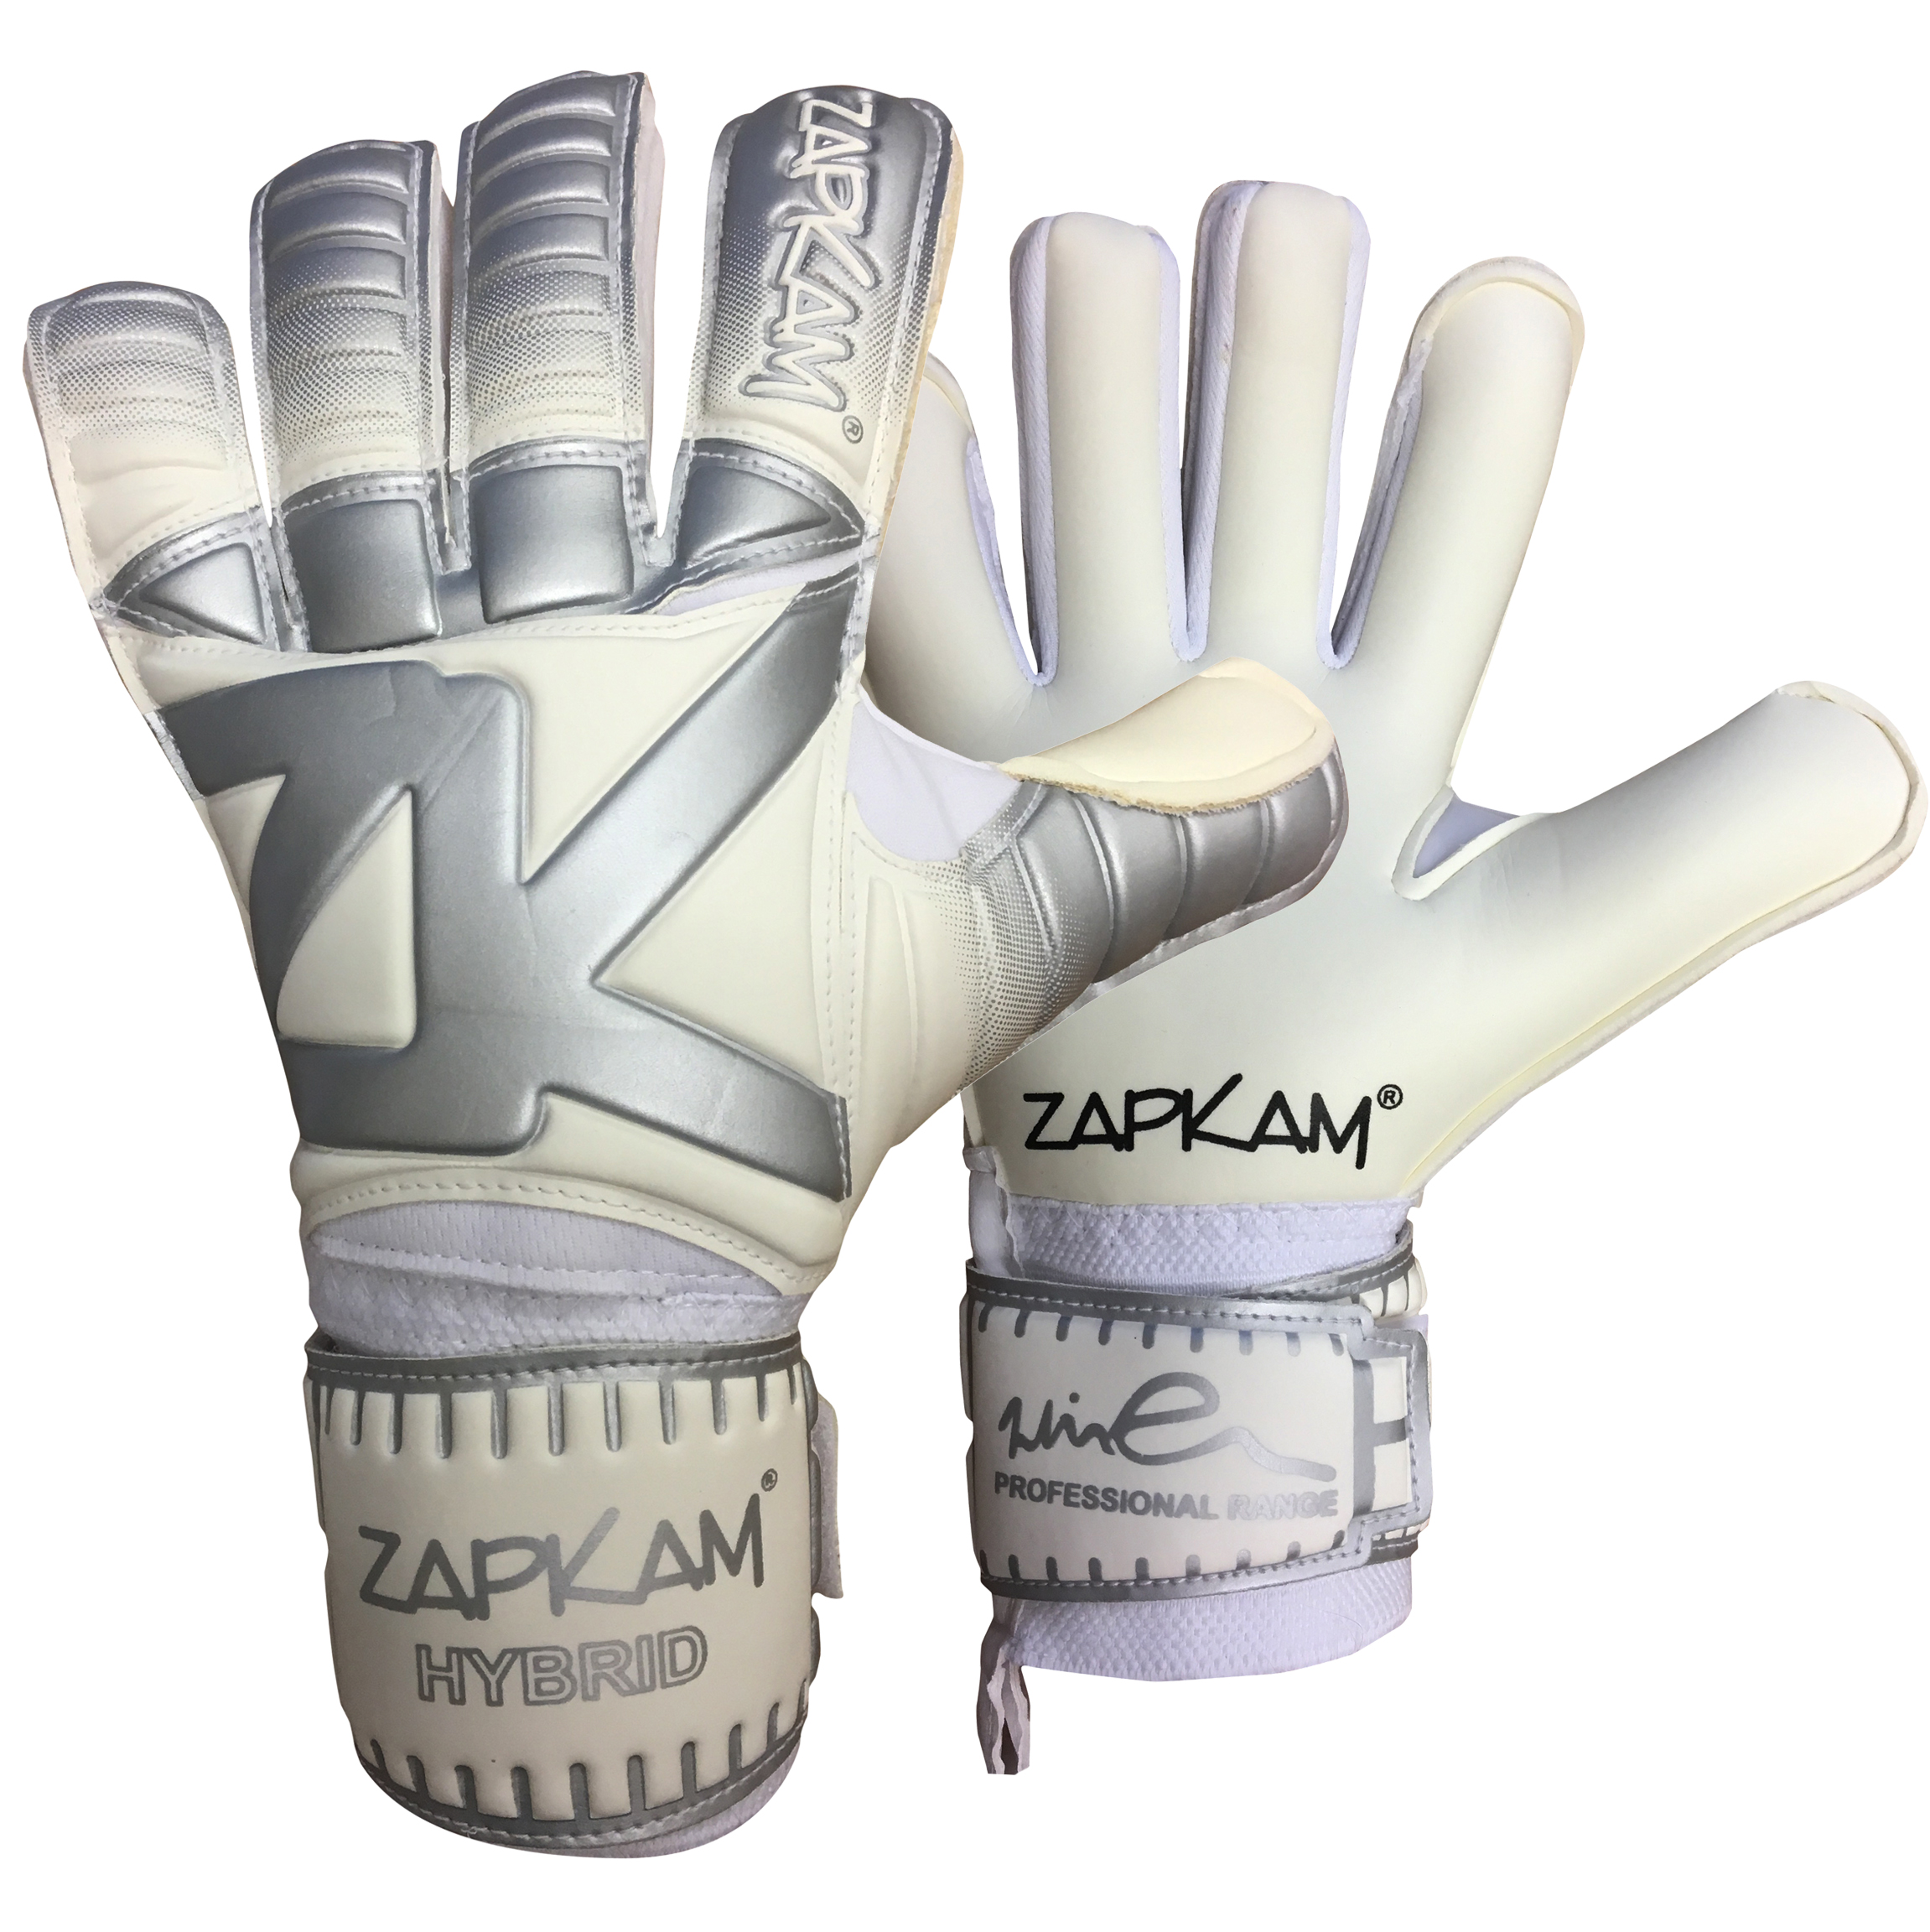 05-Hybrid-Cut-Goalkeeper-Gloves-1.jpg